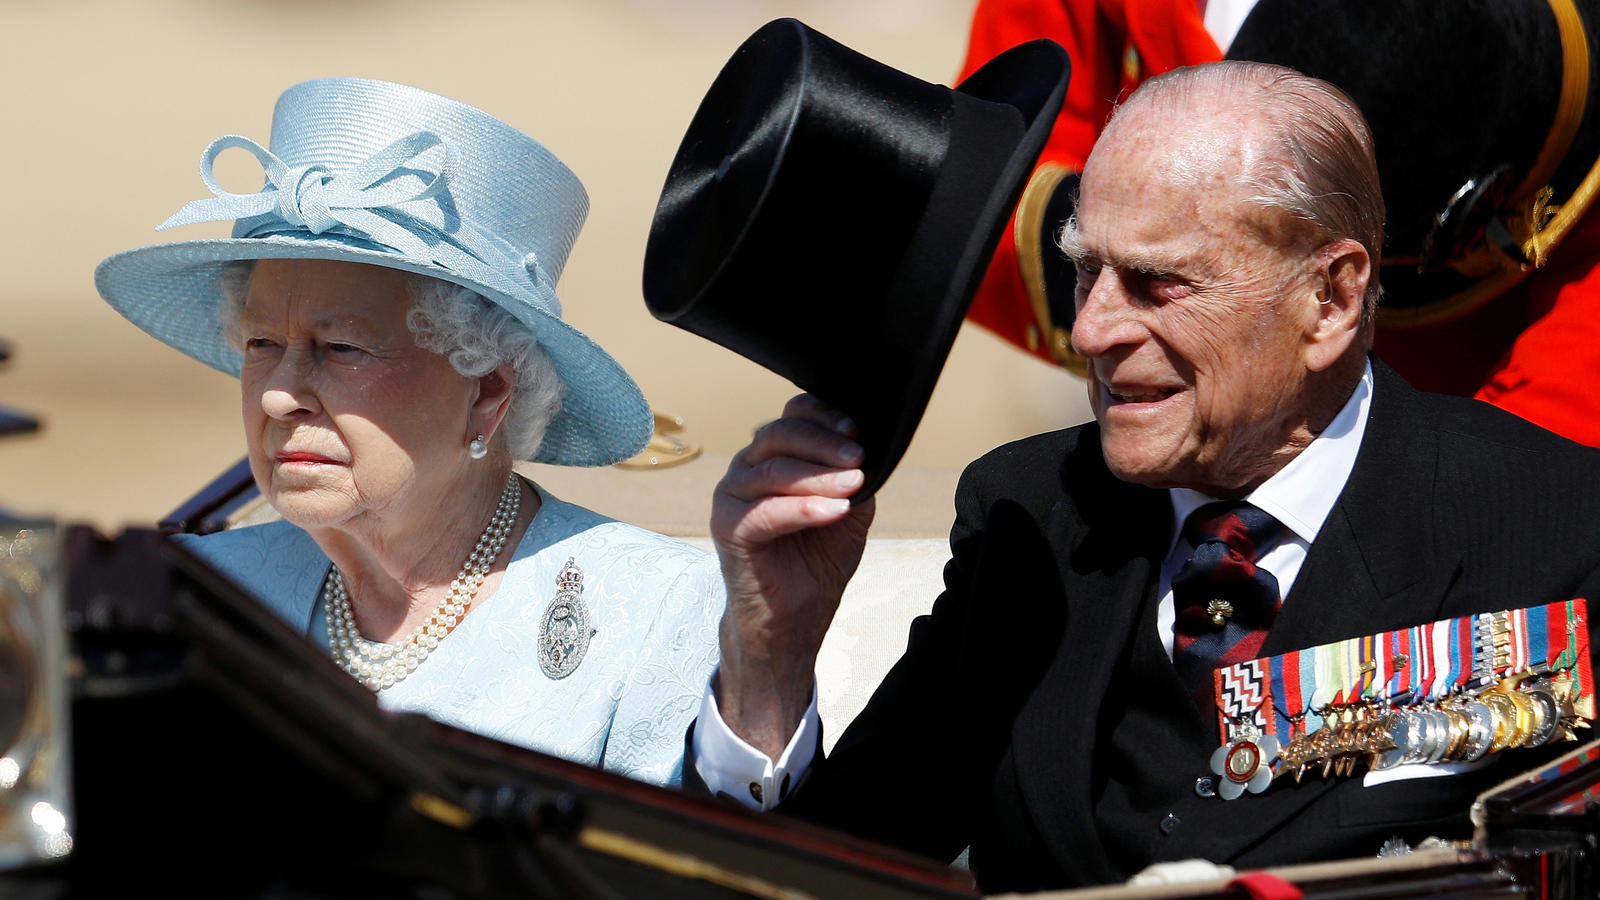 FILE PHOTO: Britain's Queen Elizabeth and Prince Philip attend Trooping the Colour in London, Britain, June 17, 2017. REUTERS/Peter Nicholls/File Photo